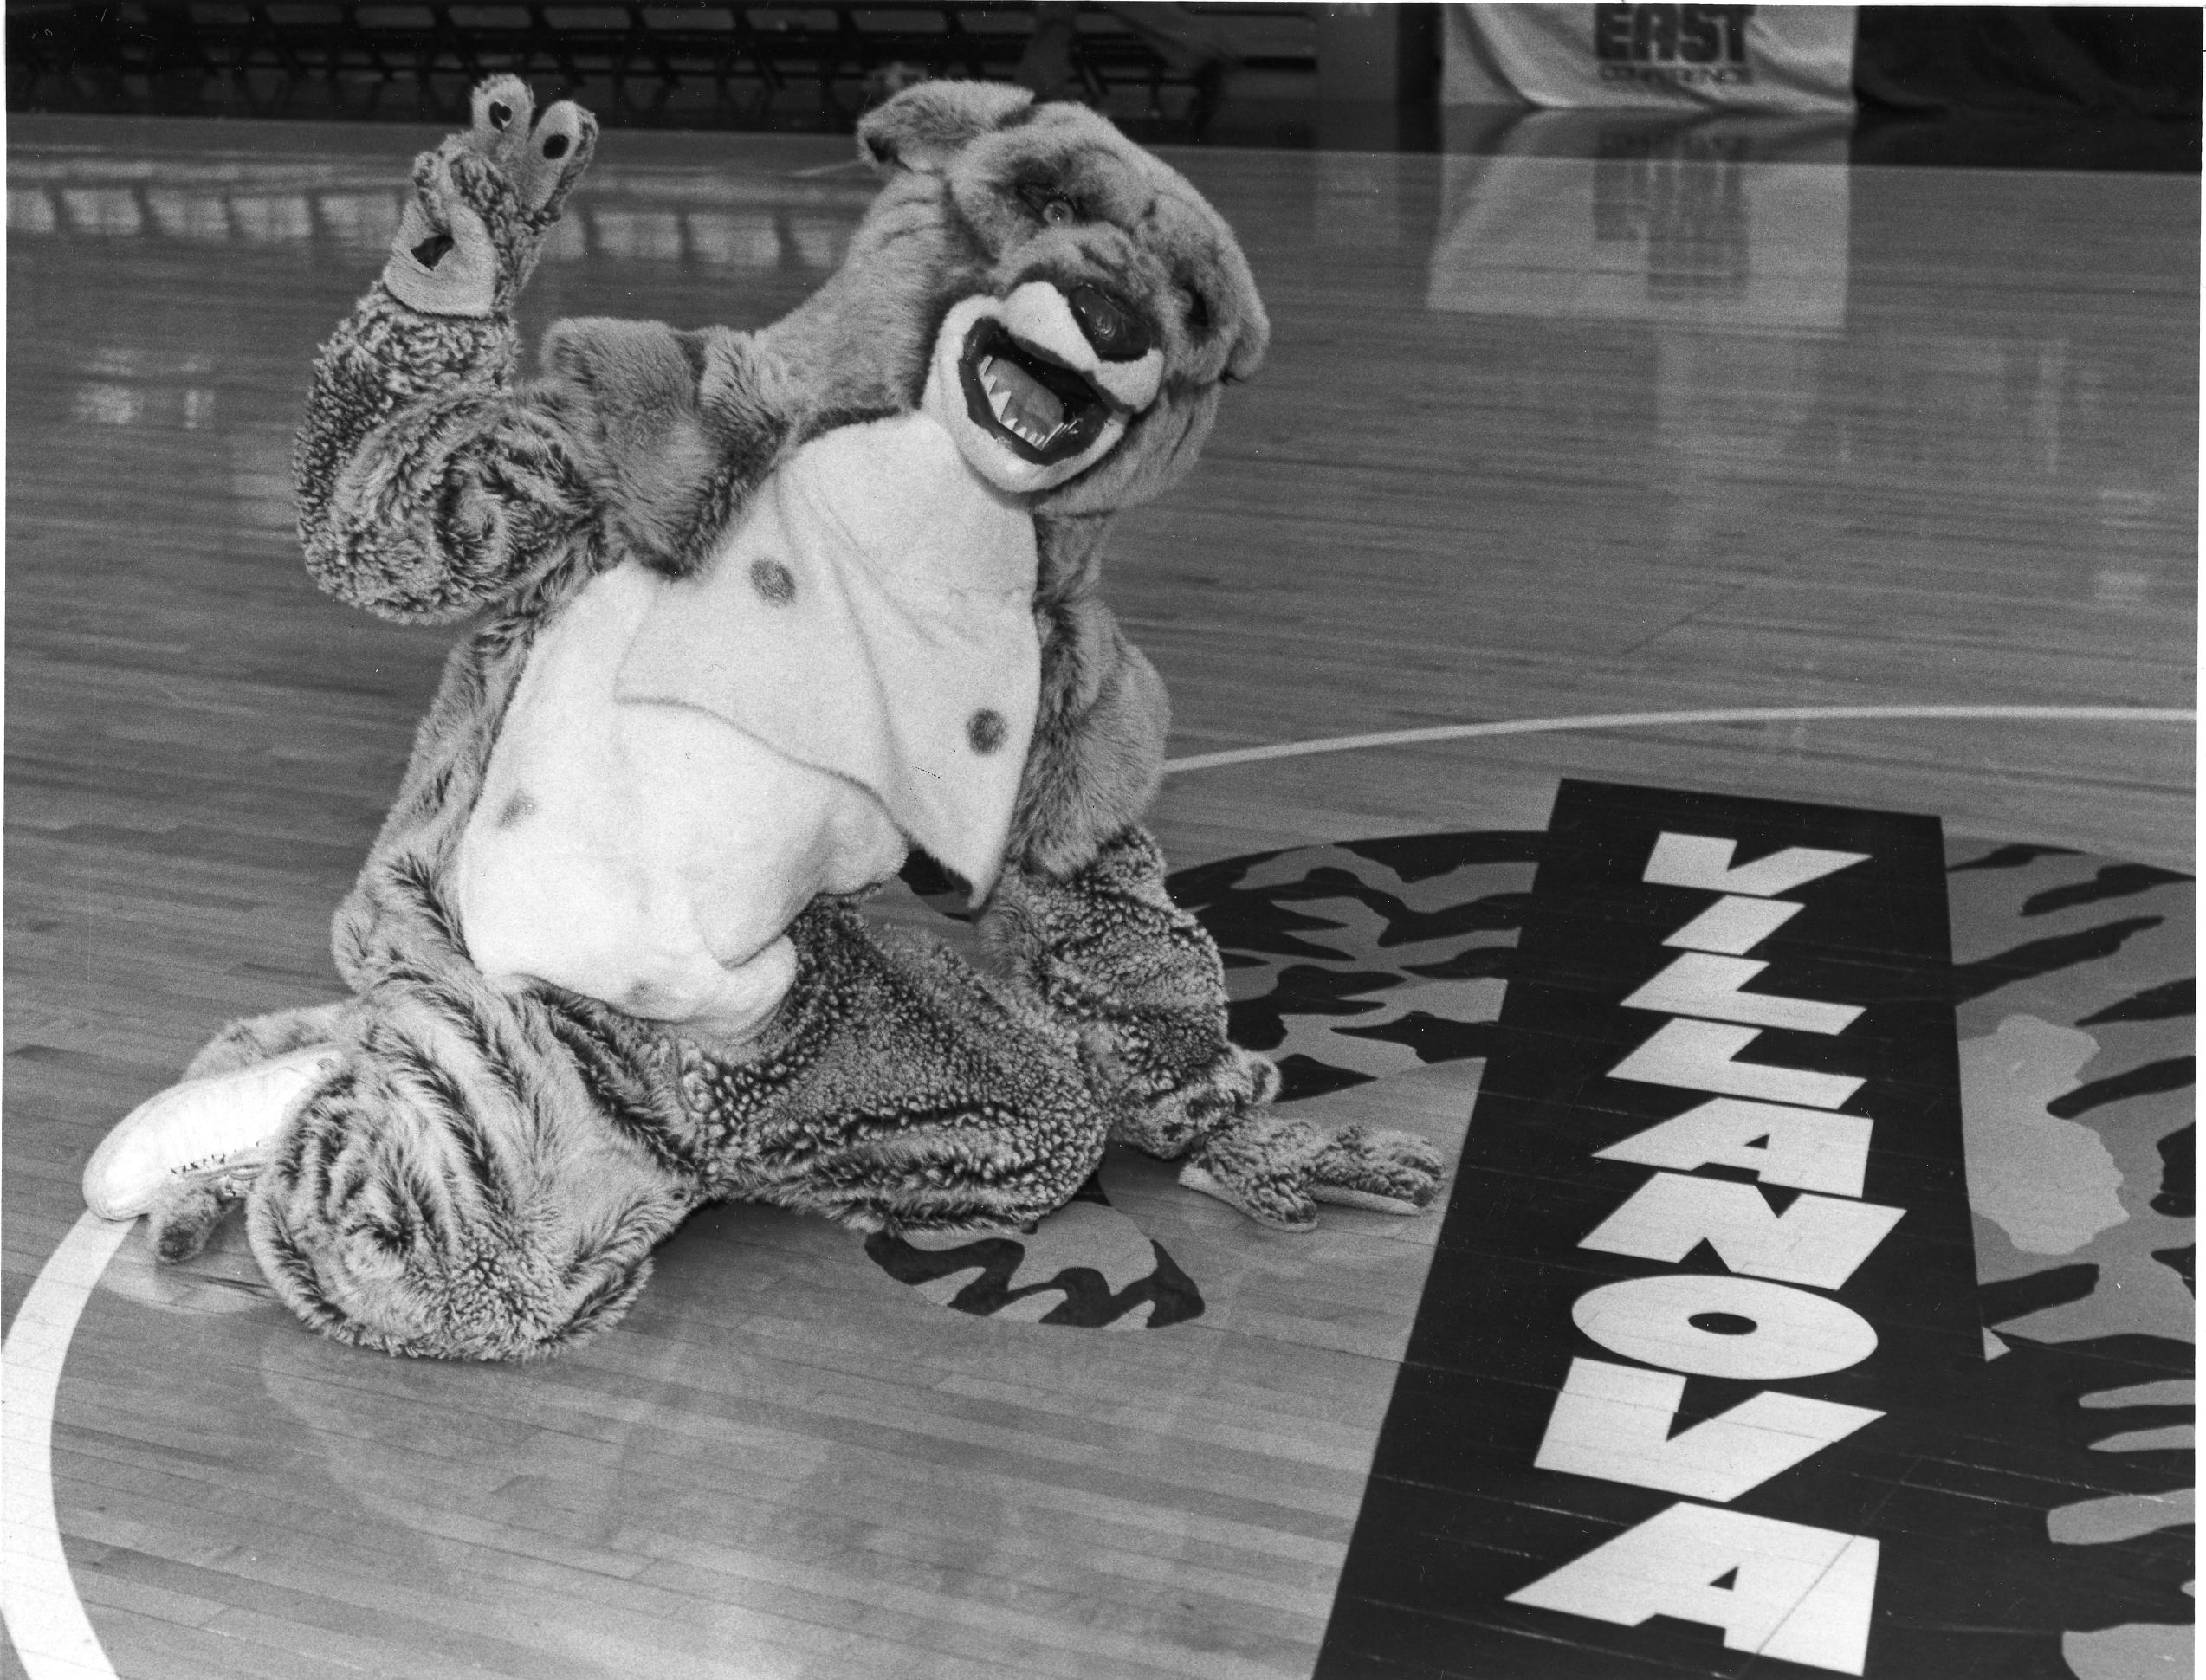 The Villanova Wildcat, 1989